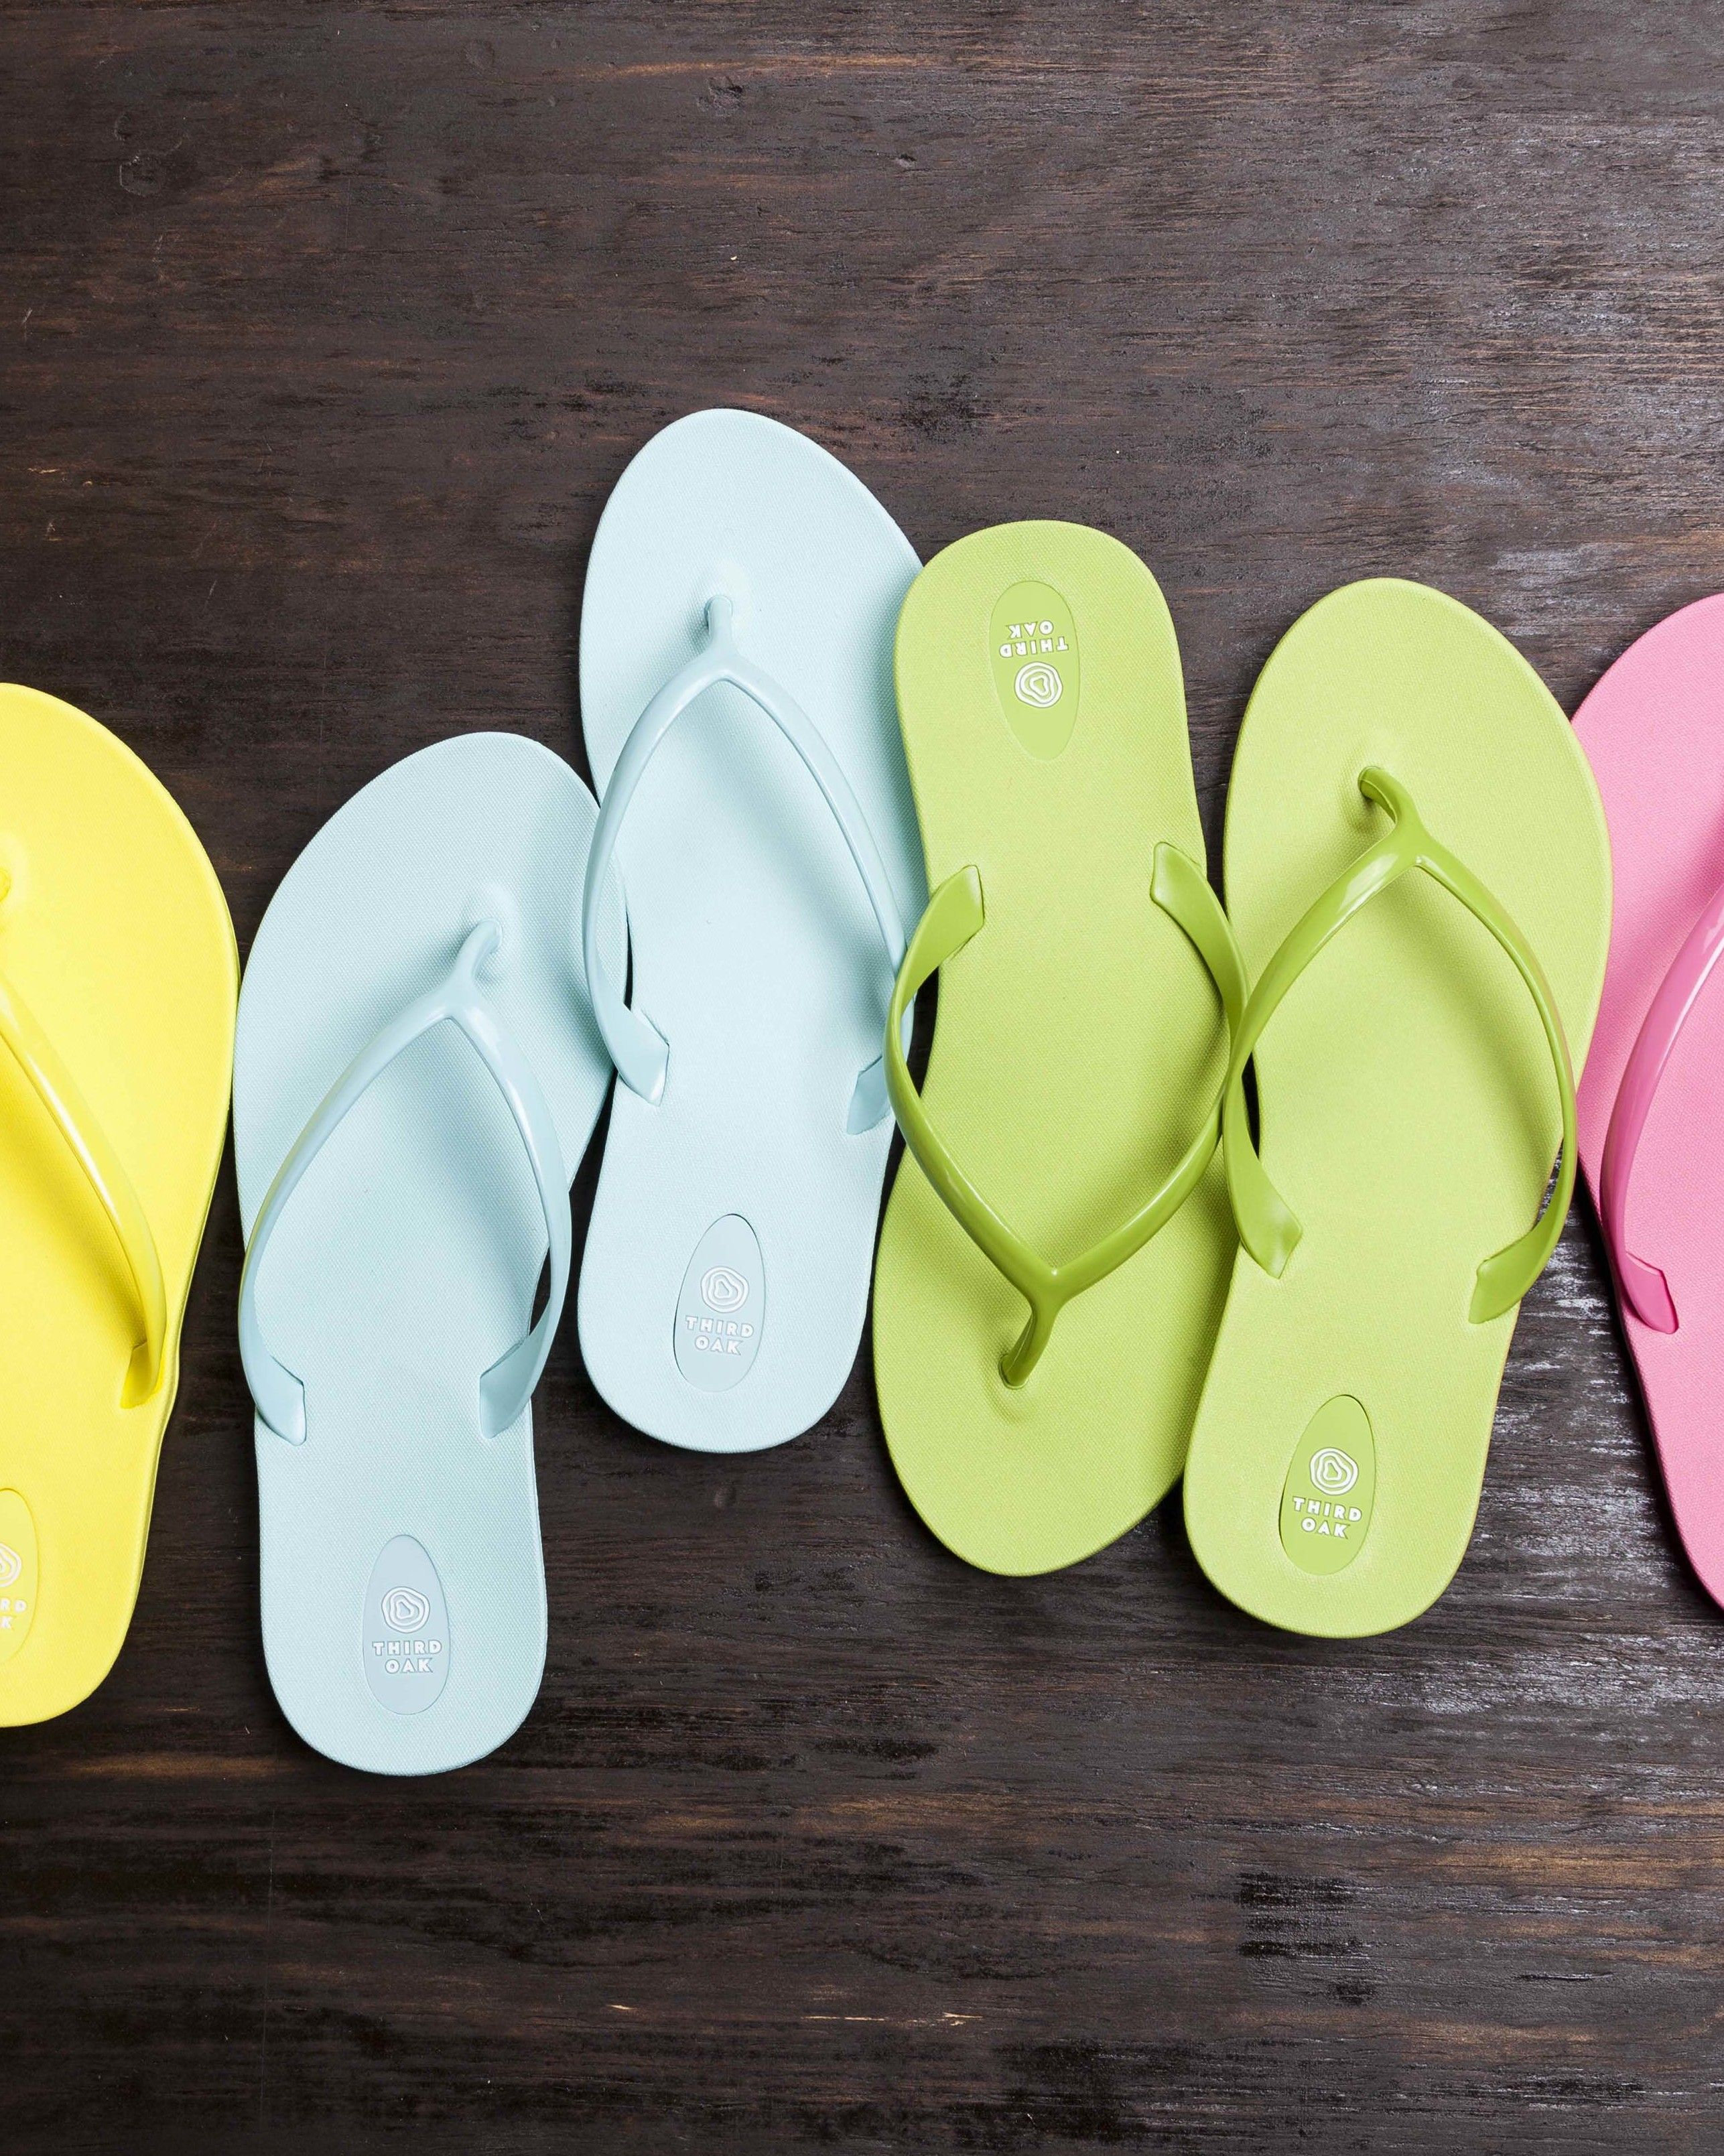 d95ac23323a2 Here s How to Recycle Old Flip Flops